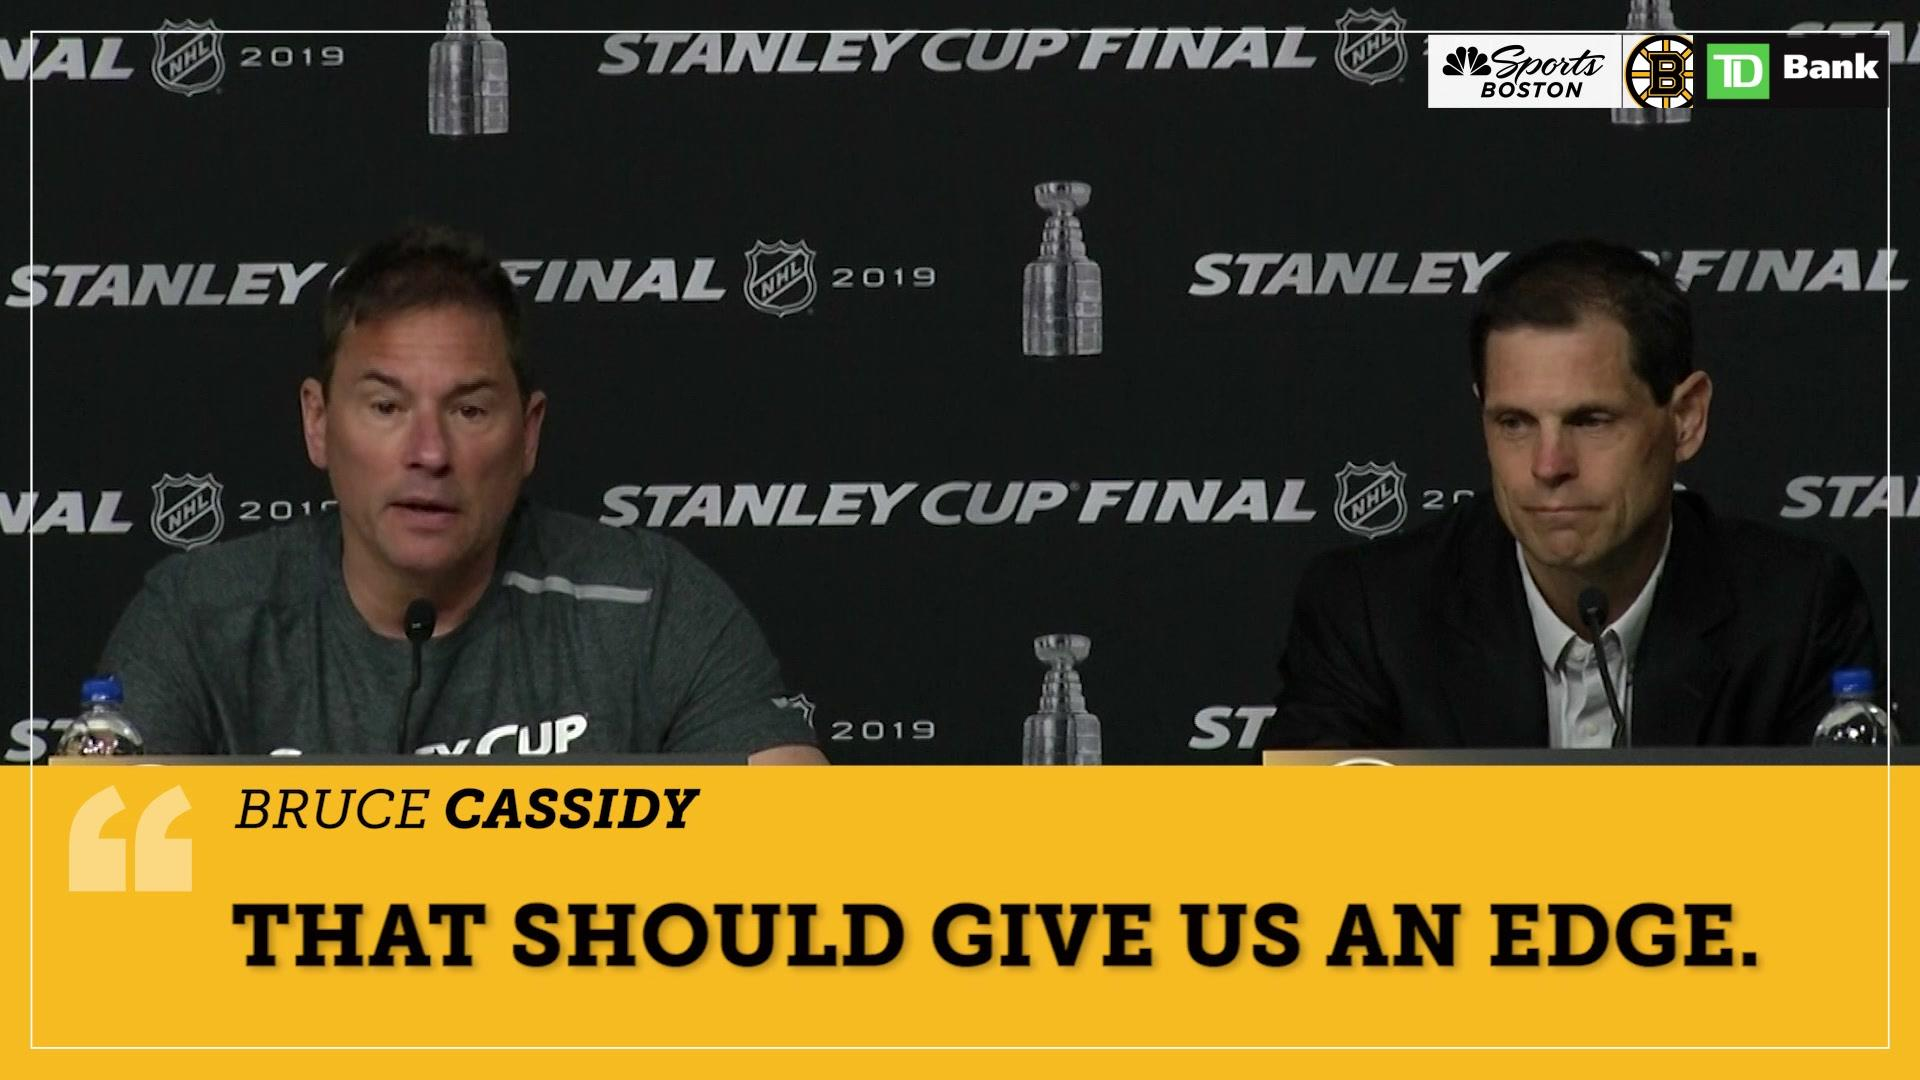 The Bruins biggest advantage over the Blues? Experience.